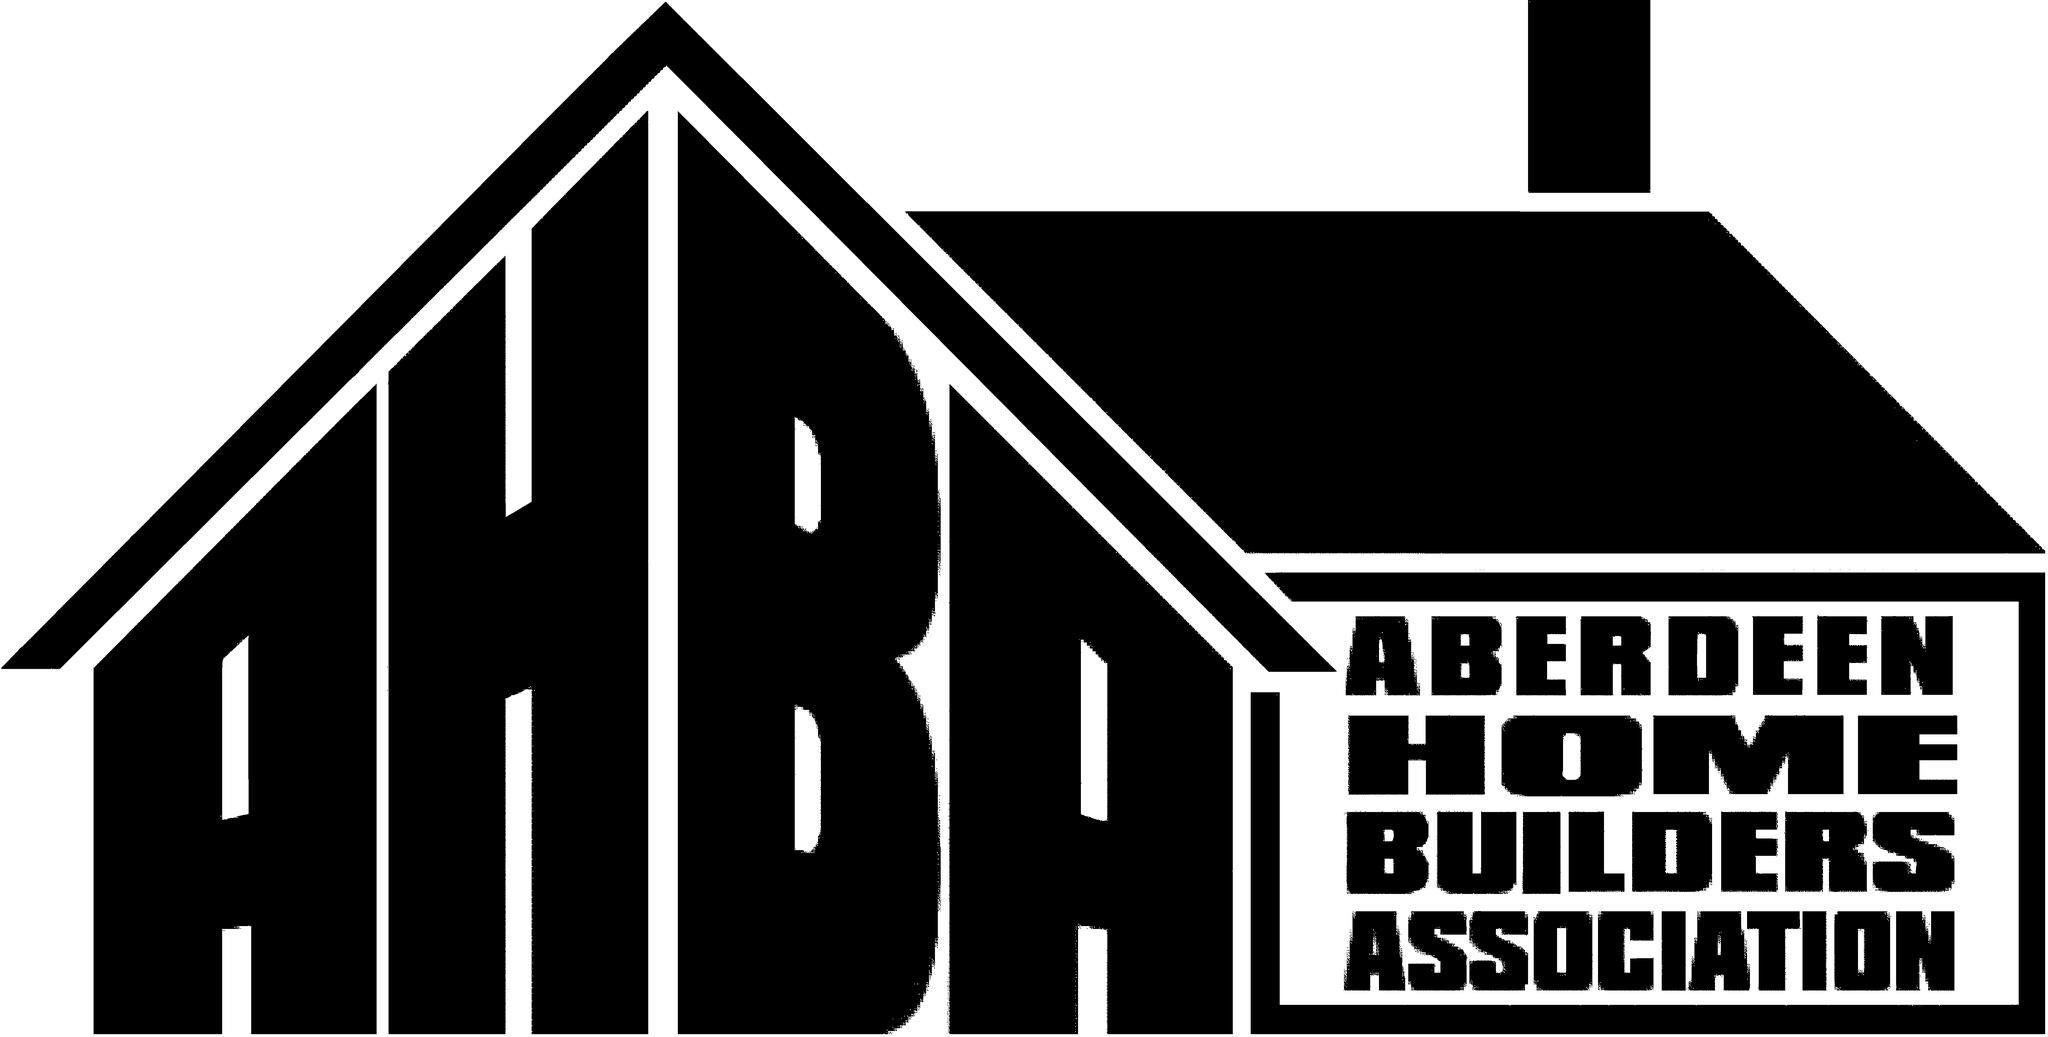 Aberdeen Home Builders Association